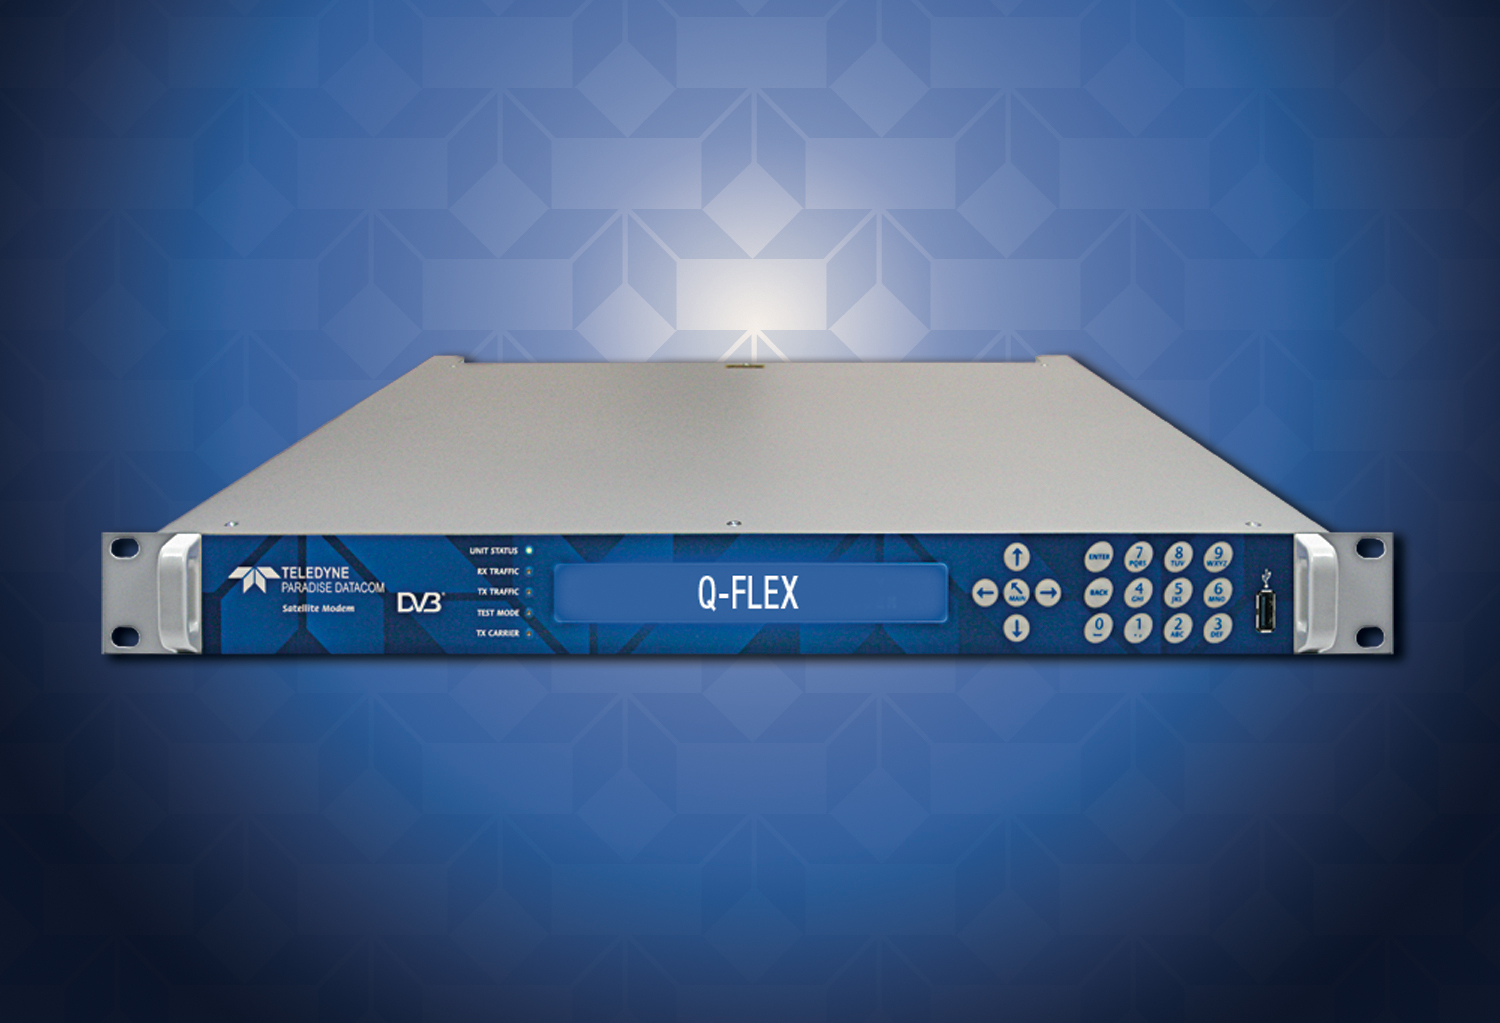 The powerful and efficient Q-Flex modem from Teledyne Paradise Datacom. (Photo: Business Wire)